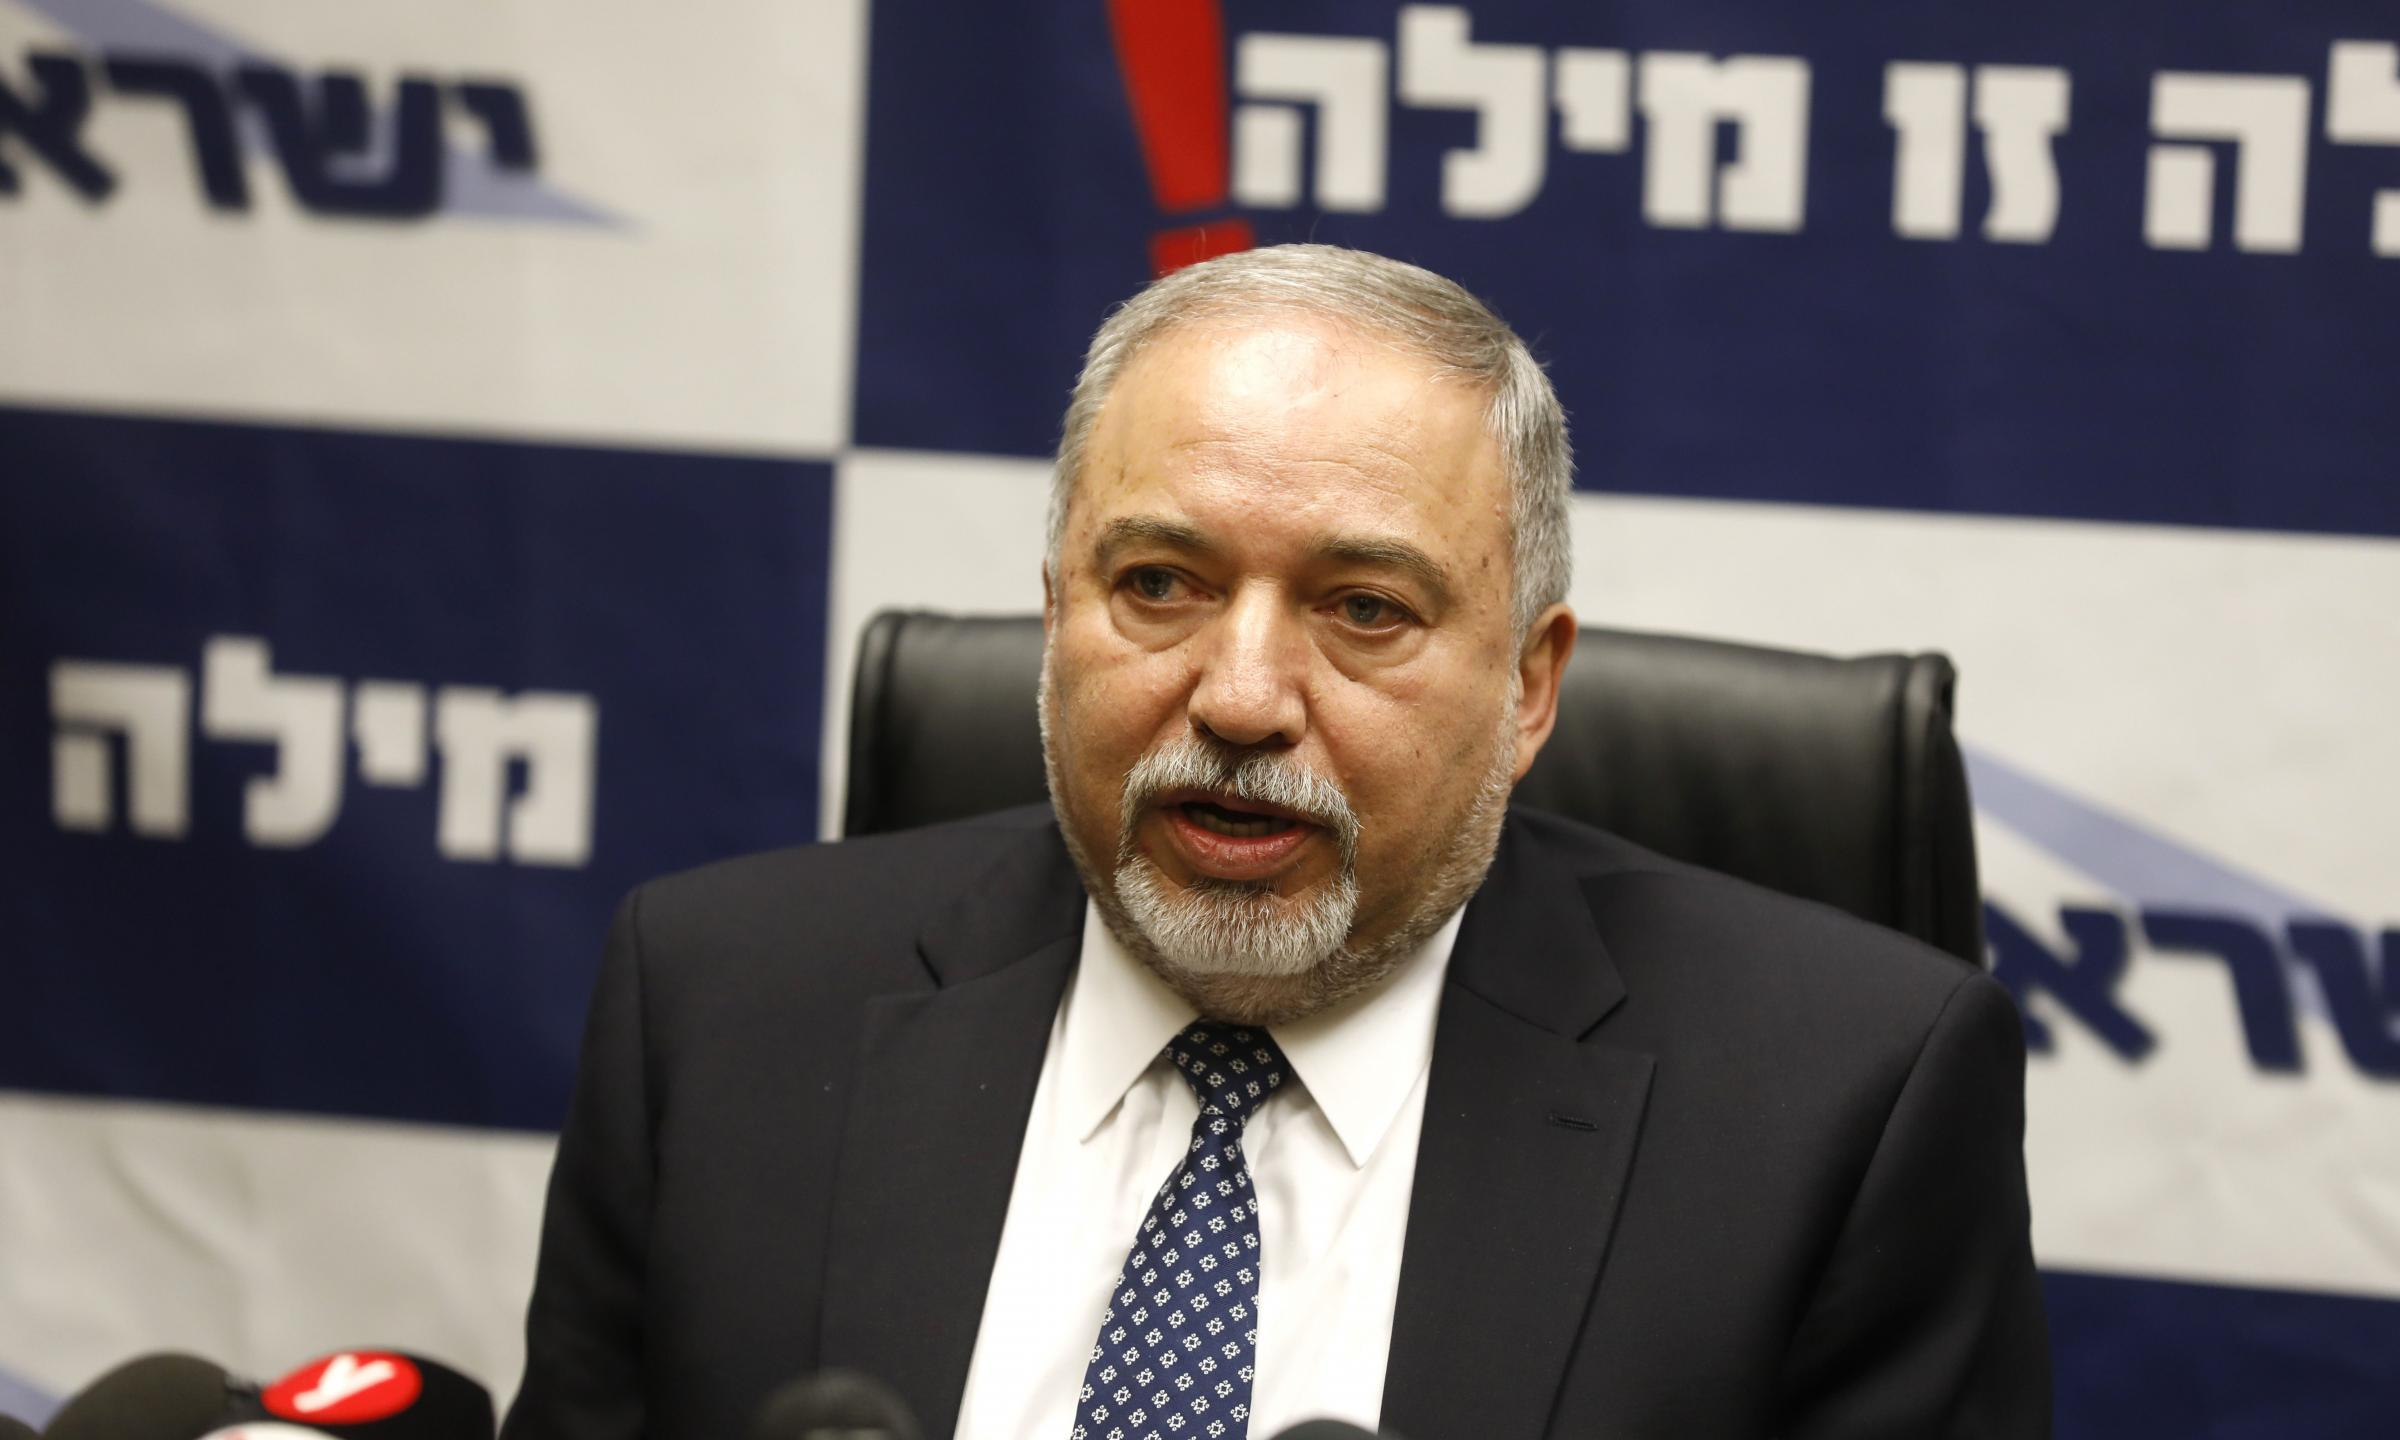 Avigdor Lieberman has rejected calls for an inquiry. Photograph: Getty